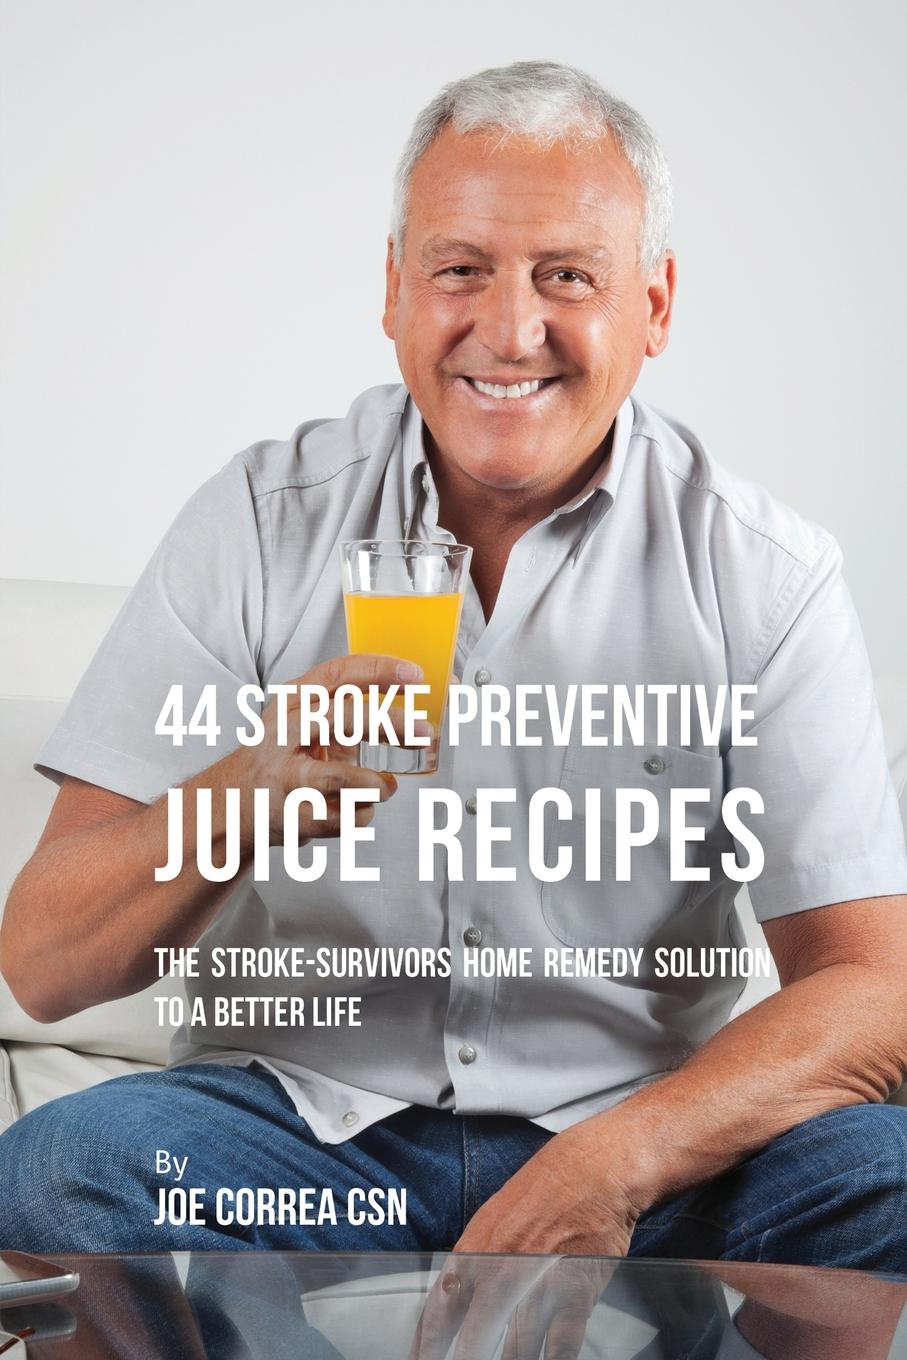 Joe Correa 44 Stroke Preventive Juice Recipes. The Stroke-Survivors Home Remedy Solution to a Better Life christopher burton abc of medically unexplained symptoms